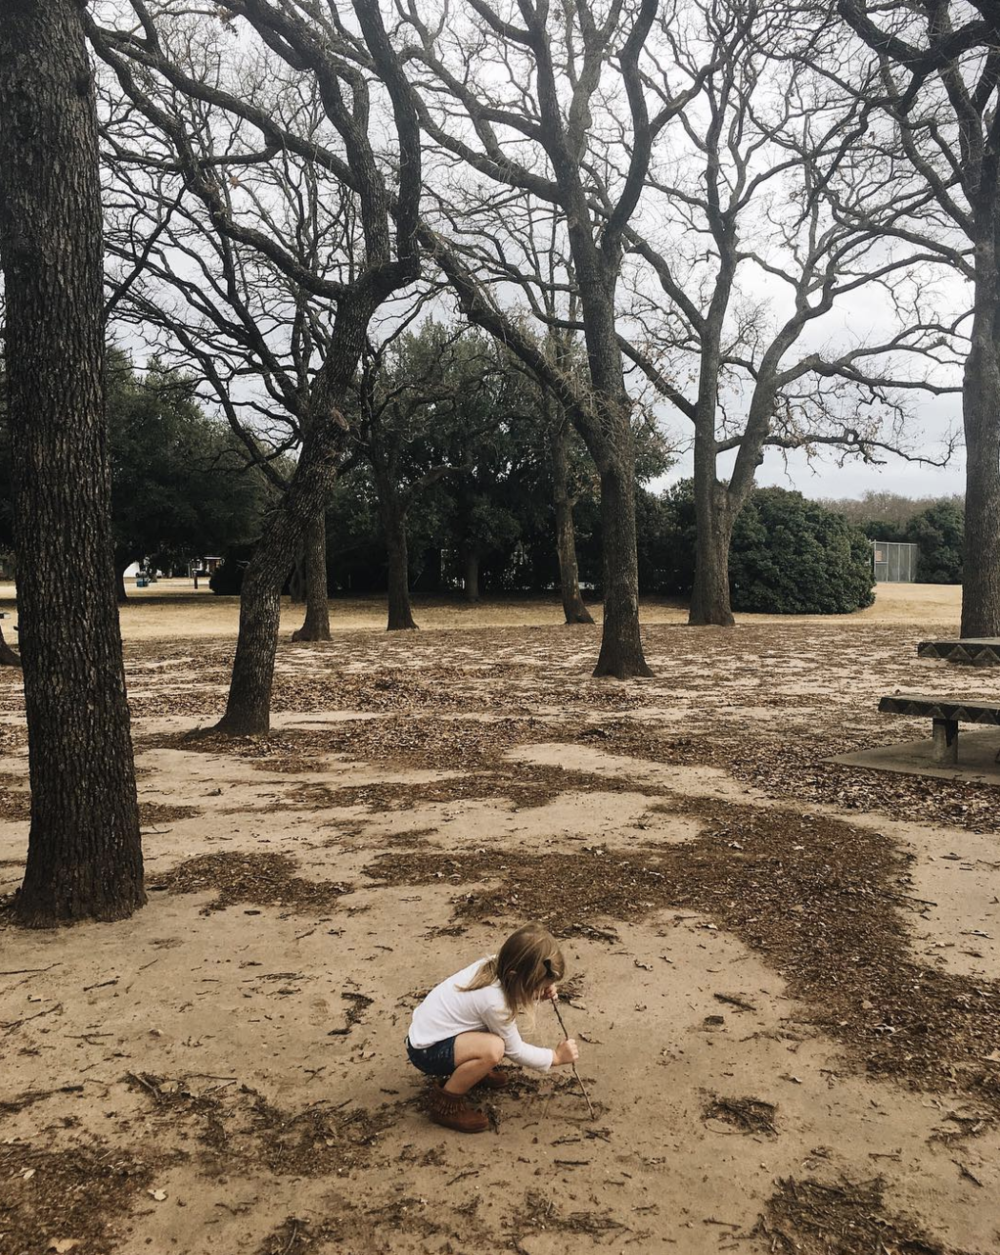 @cassiearnoldart at the park because it was December but still 70 degrees.